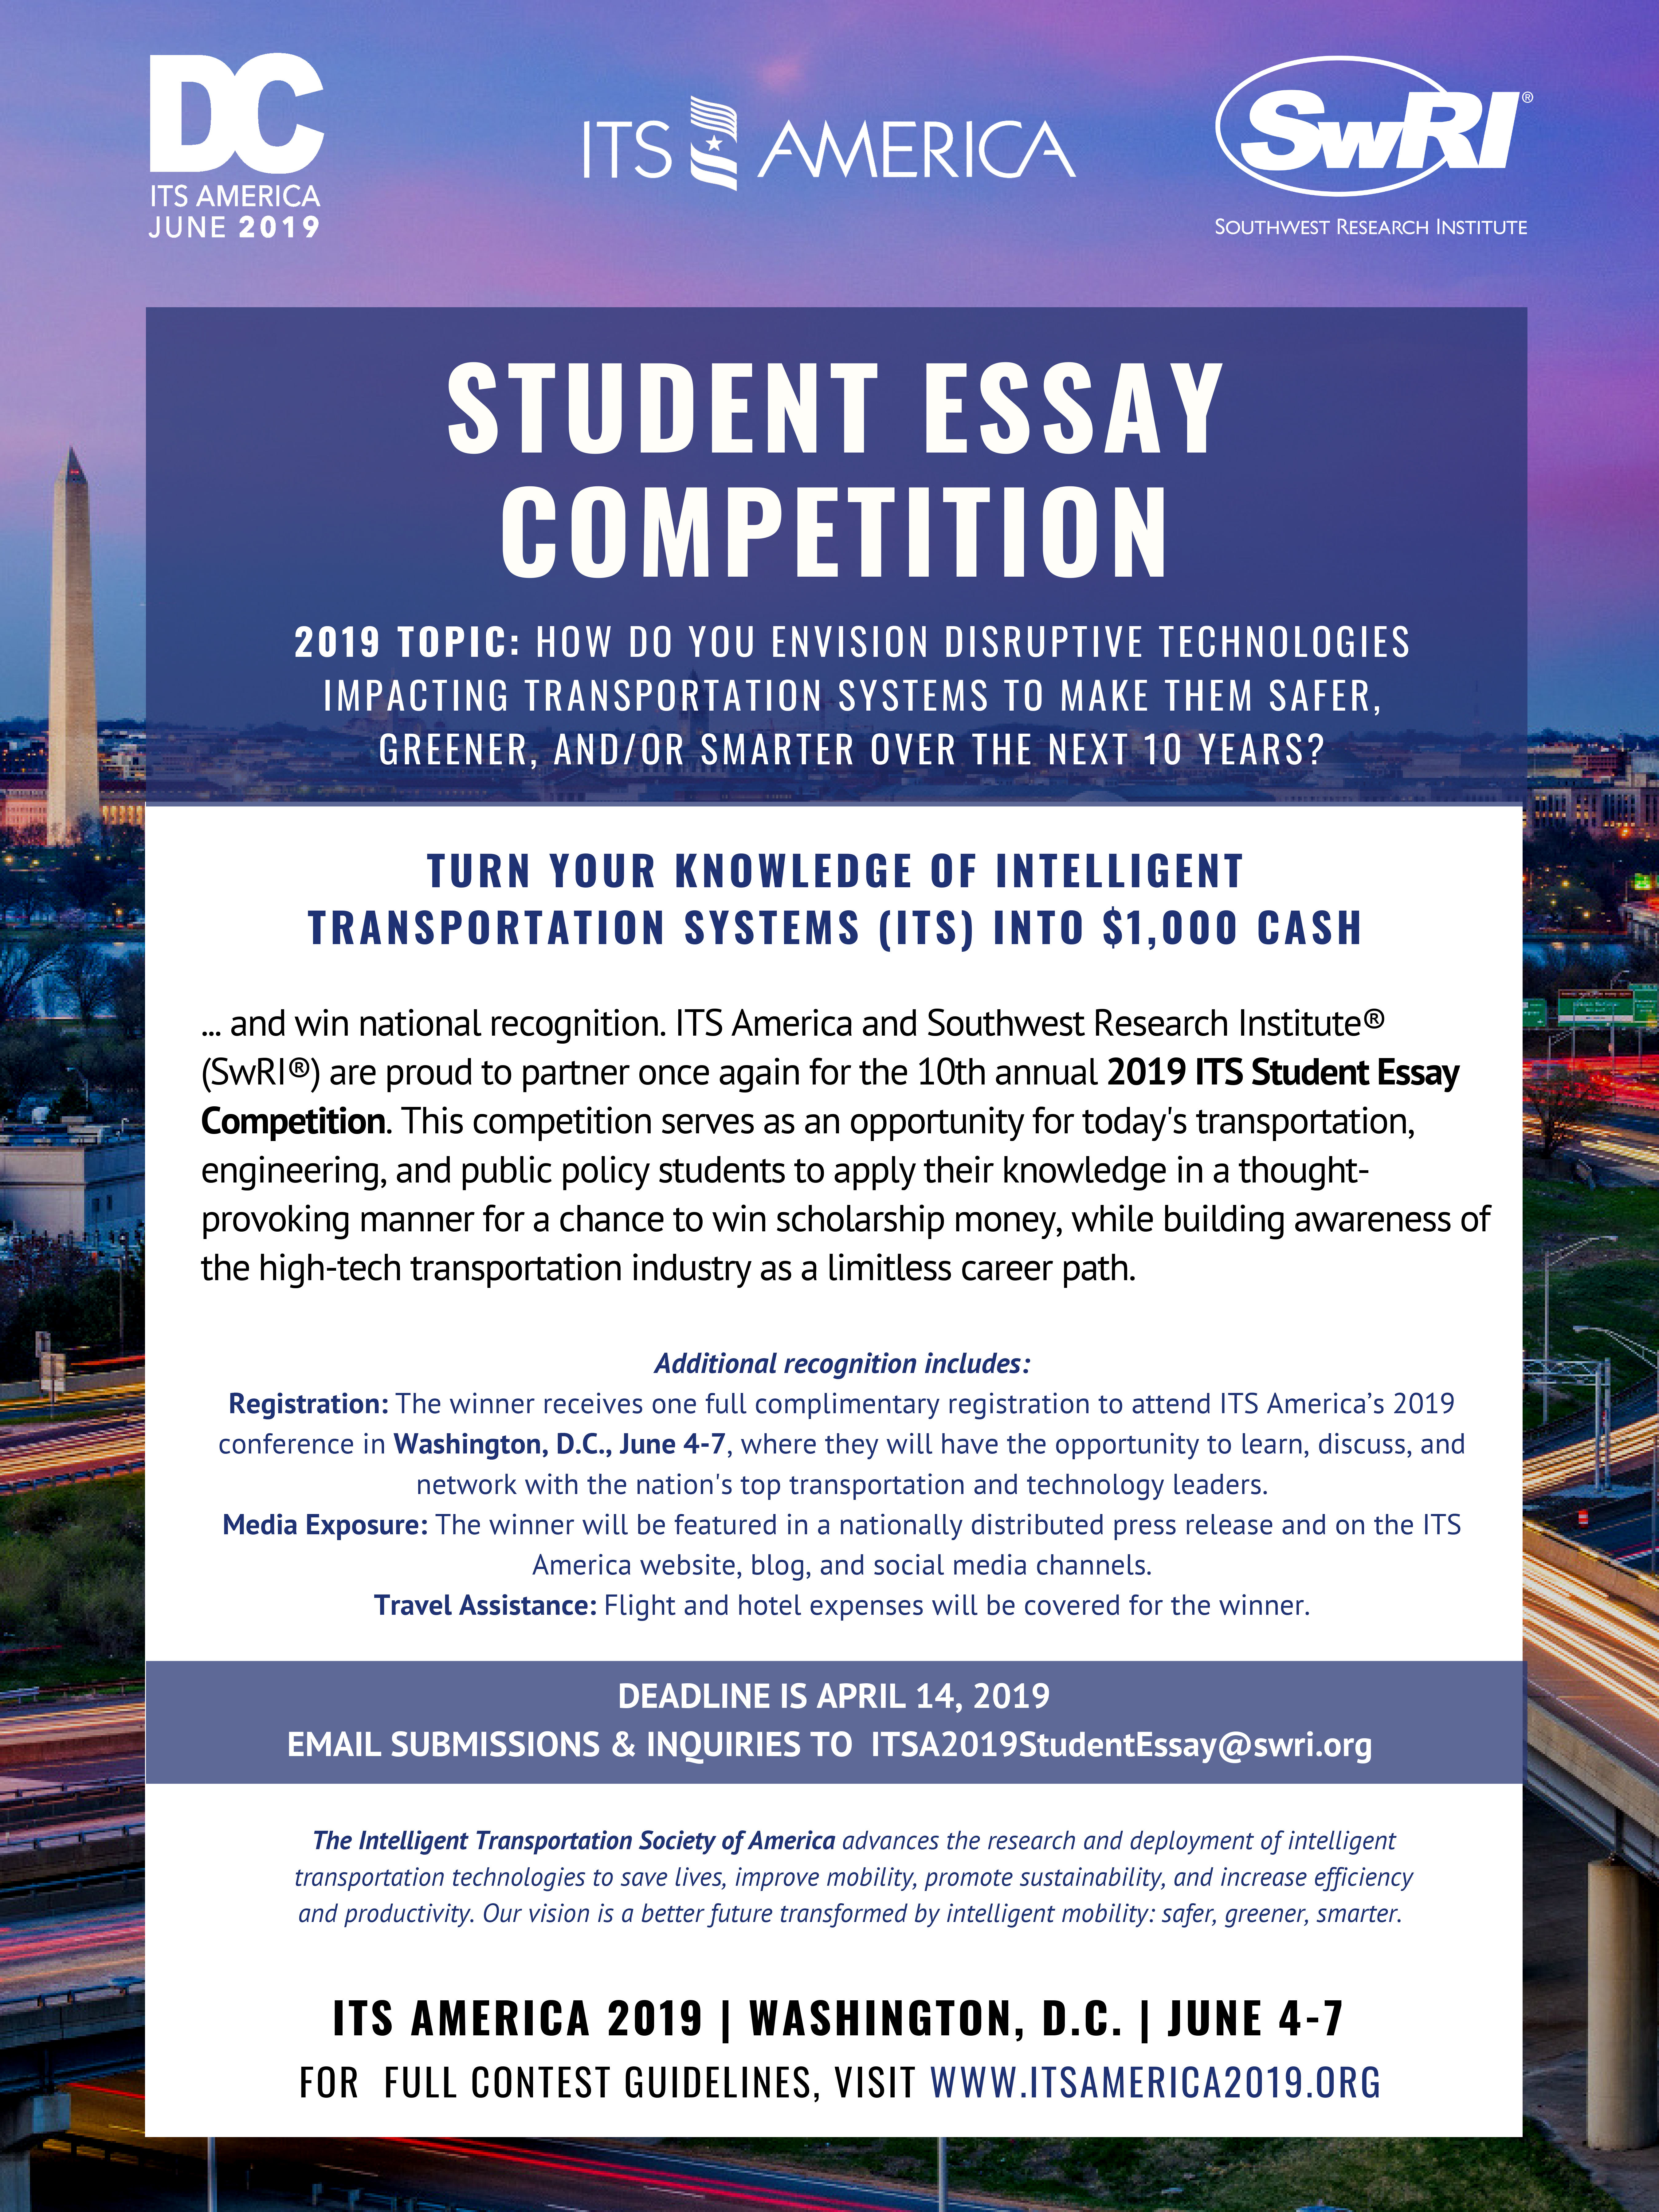 Swri Sponsors Its Americas Th Student Essay Competition With Cash  Swri Sponsors Its Americas Th Student Essay Competition With Cash Prize   Southwest Research Institute